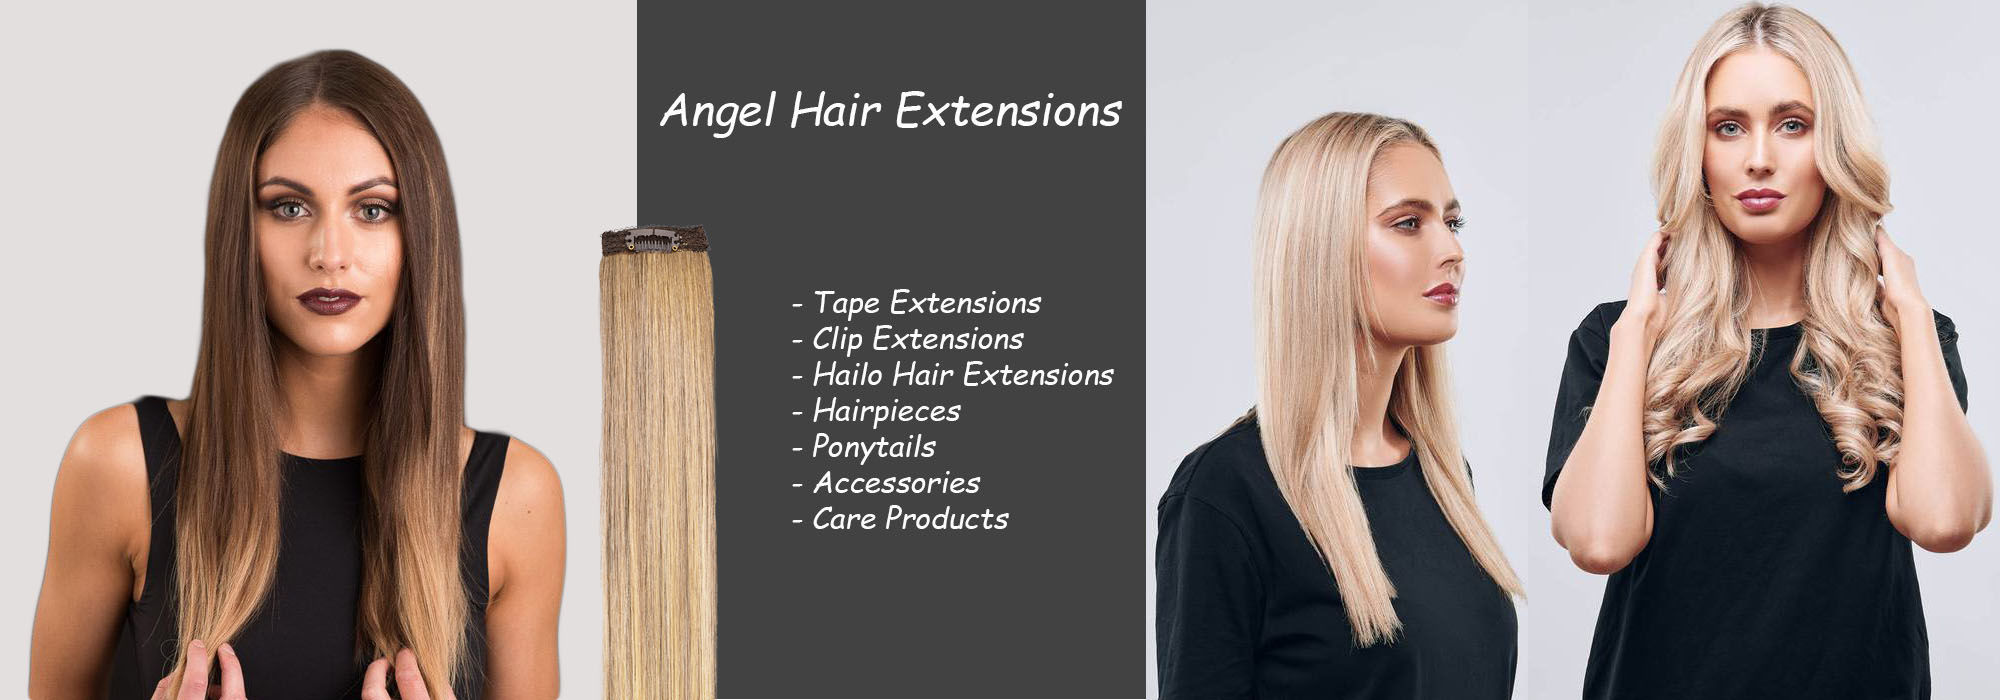 Loreal Liquid lipstick, Warragul discount cosmetics and hair products, Online discount cosmetics NSW, Discount cosmetics and hair products, Act discount cosmetics and hair products, Warragul Wholesale hair extension